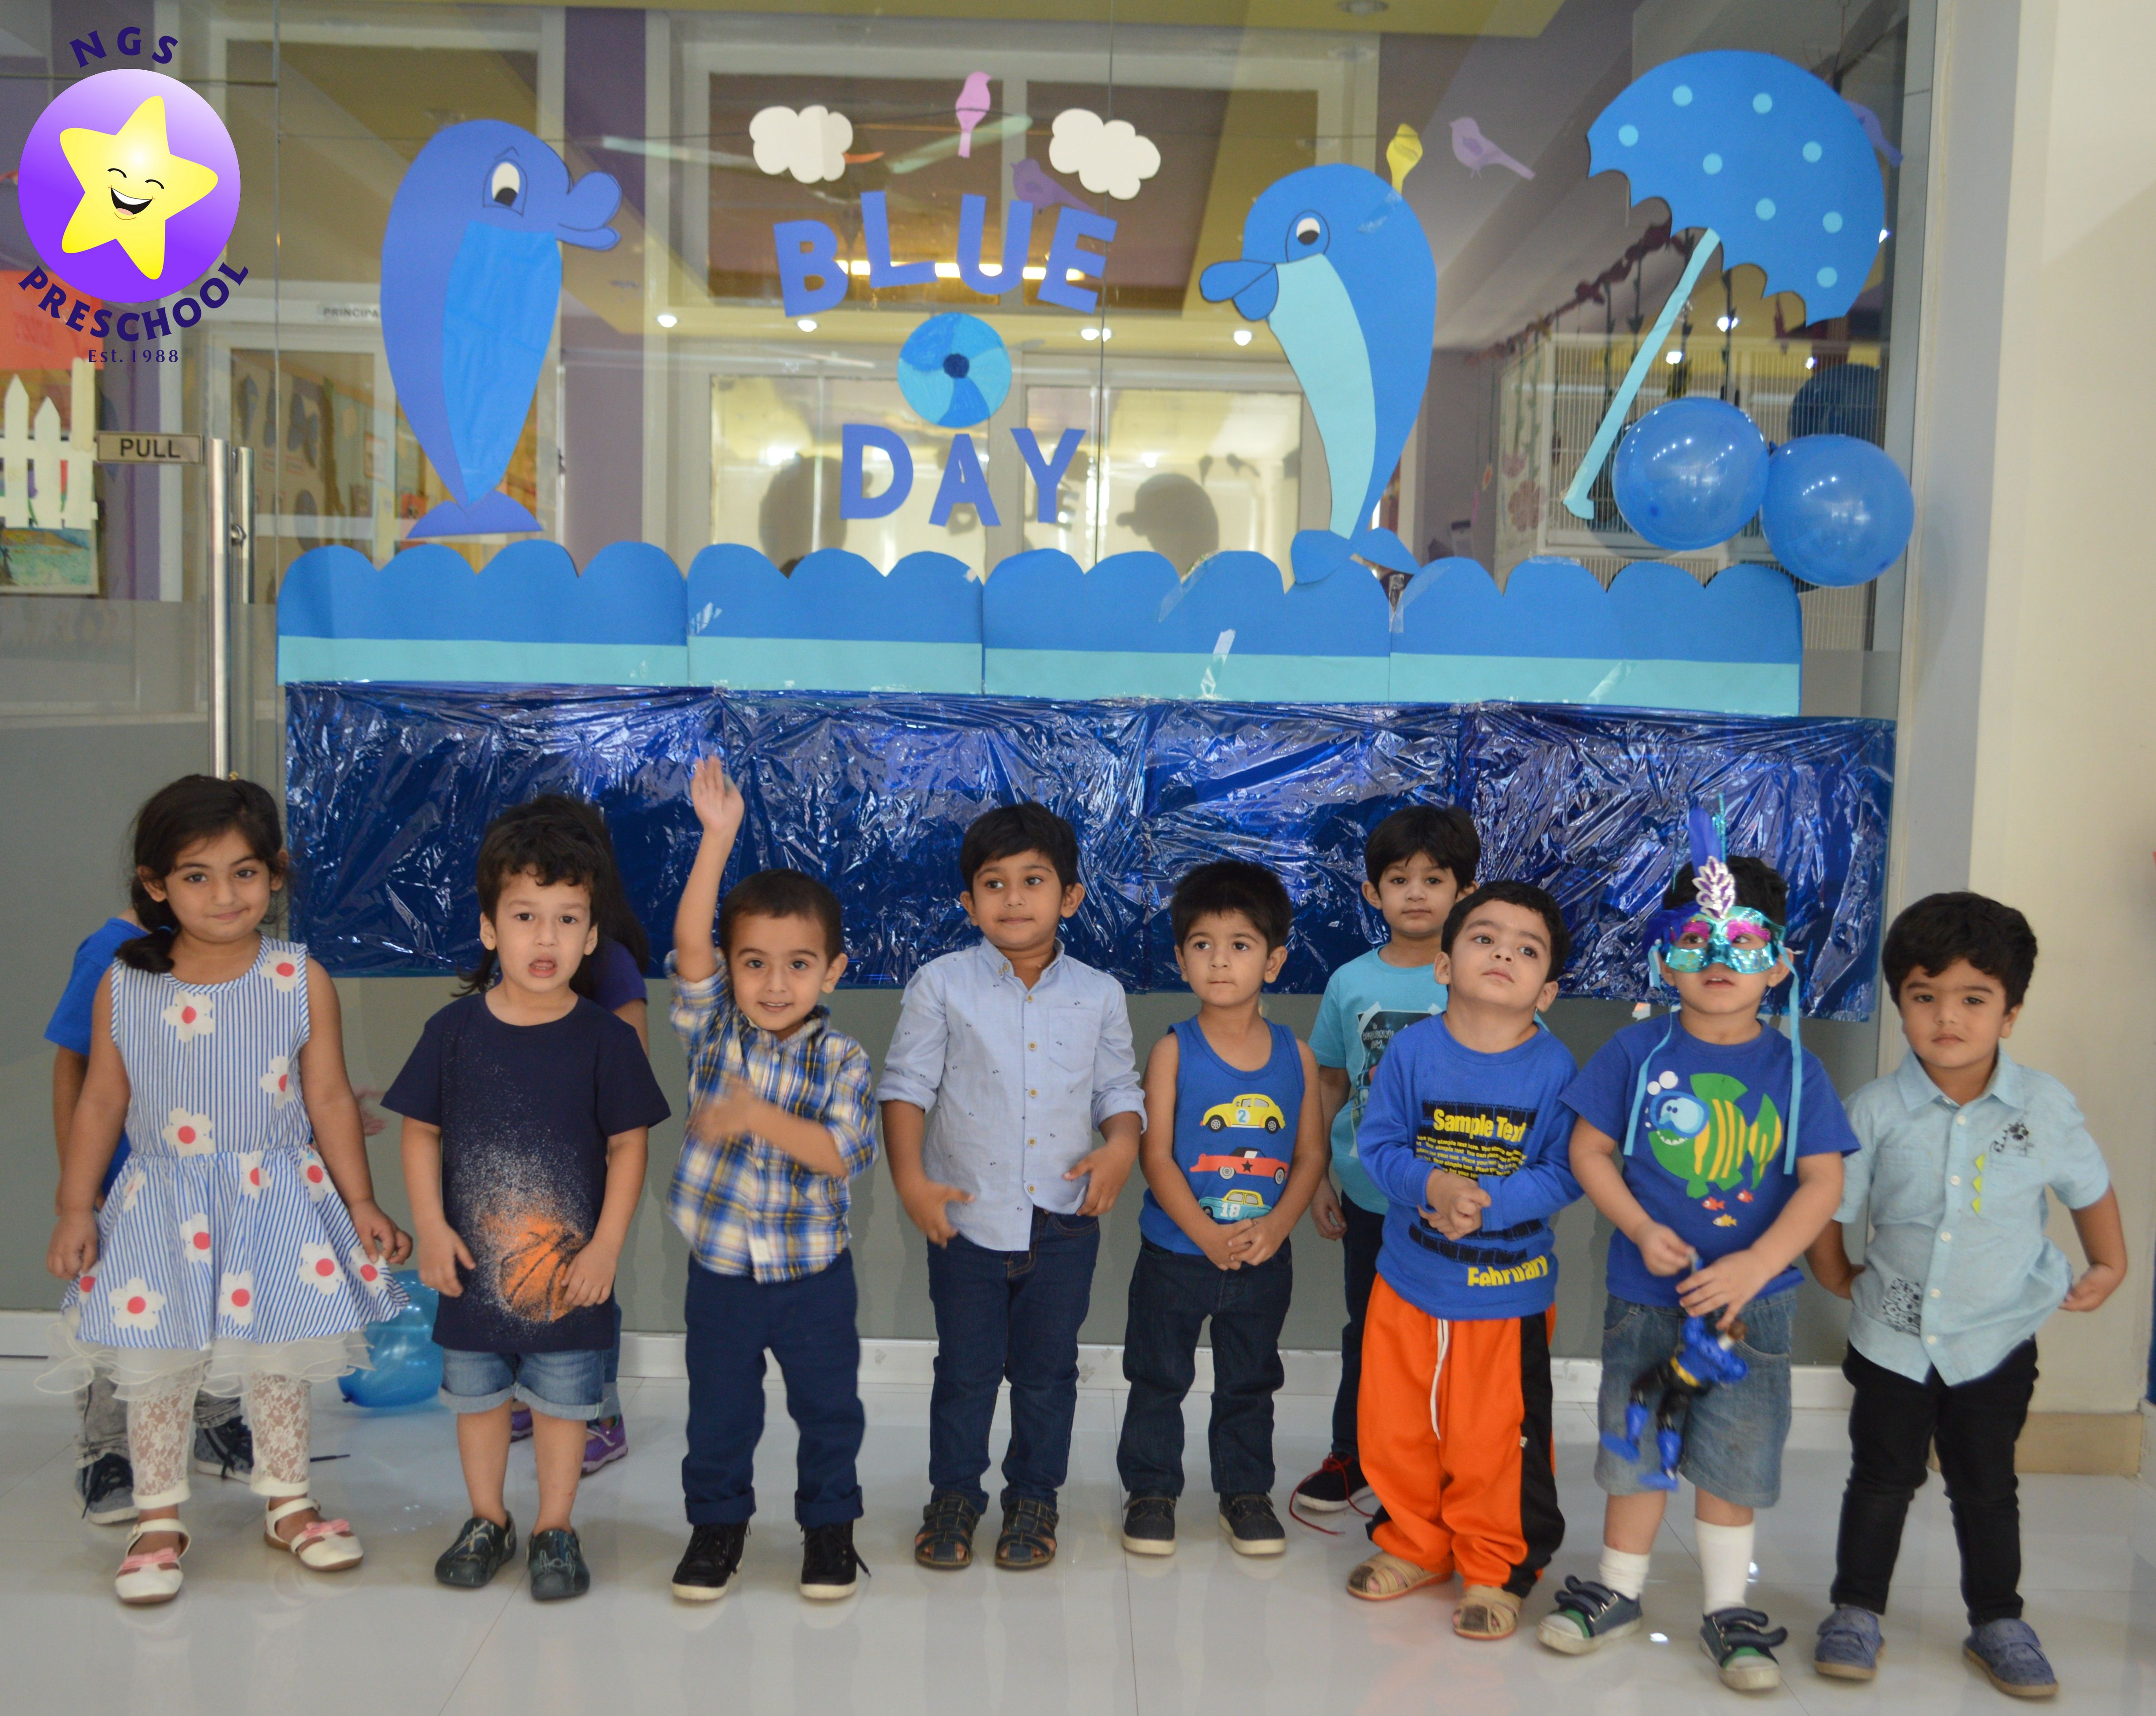 Blue Colour Day Playgroup